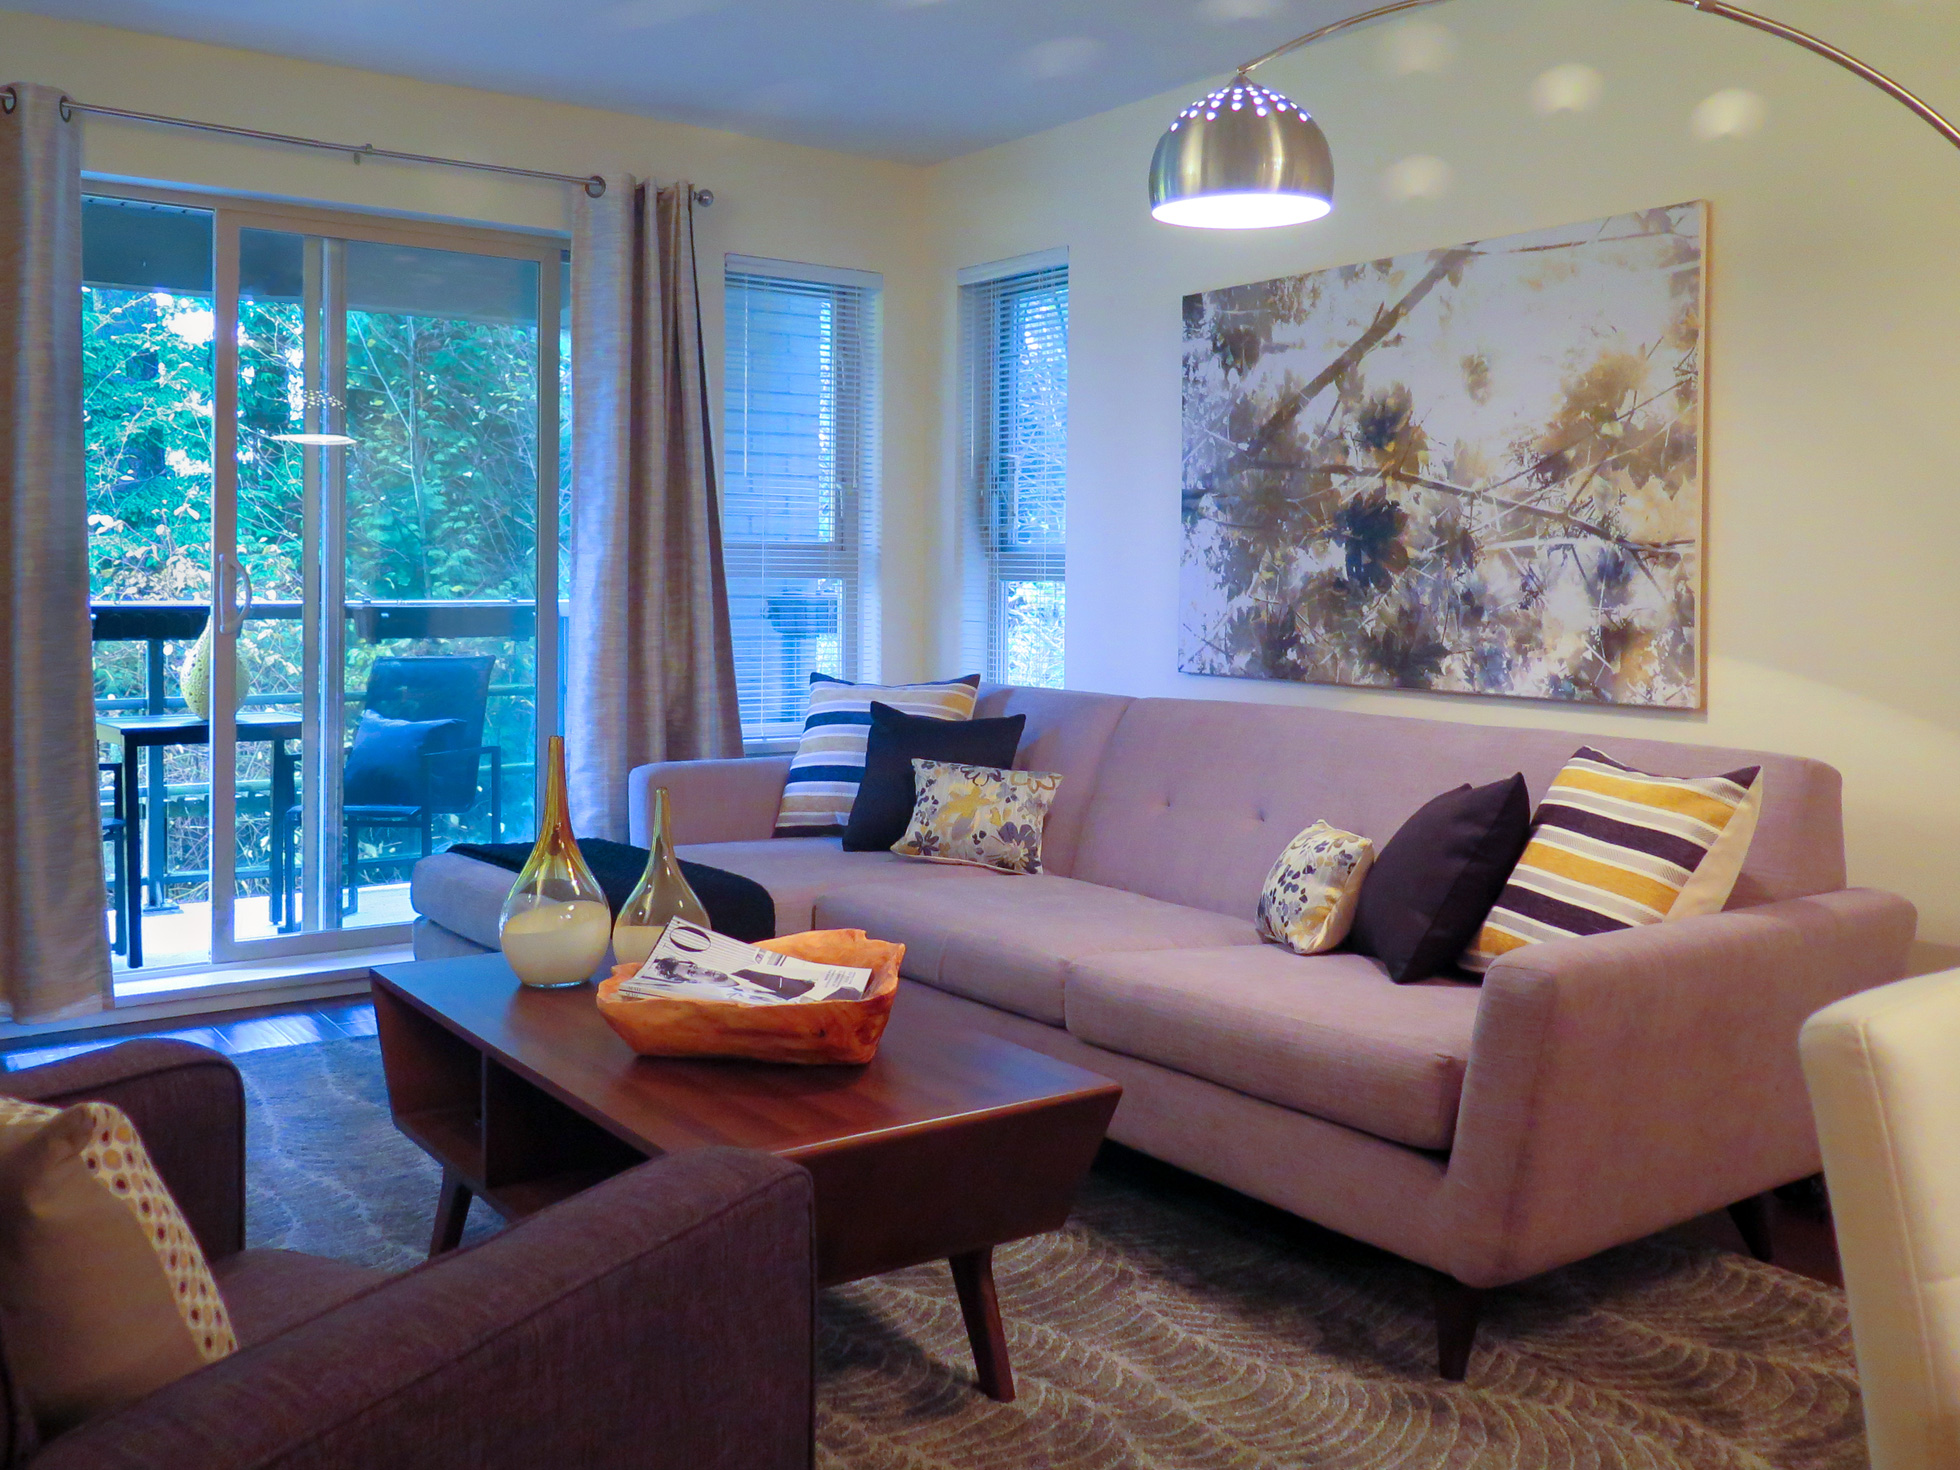 Home Staging Tips & Checklist | HouseLogic